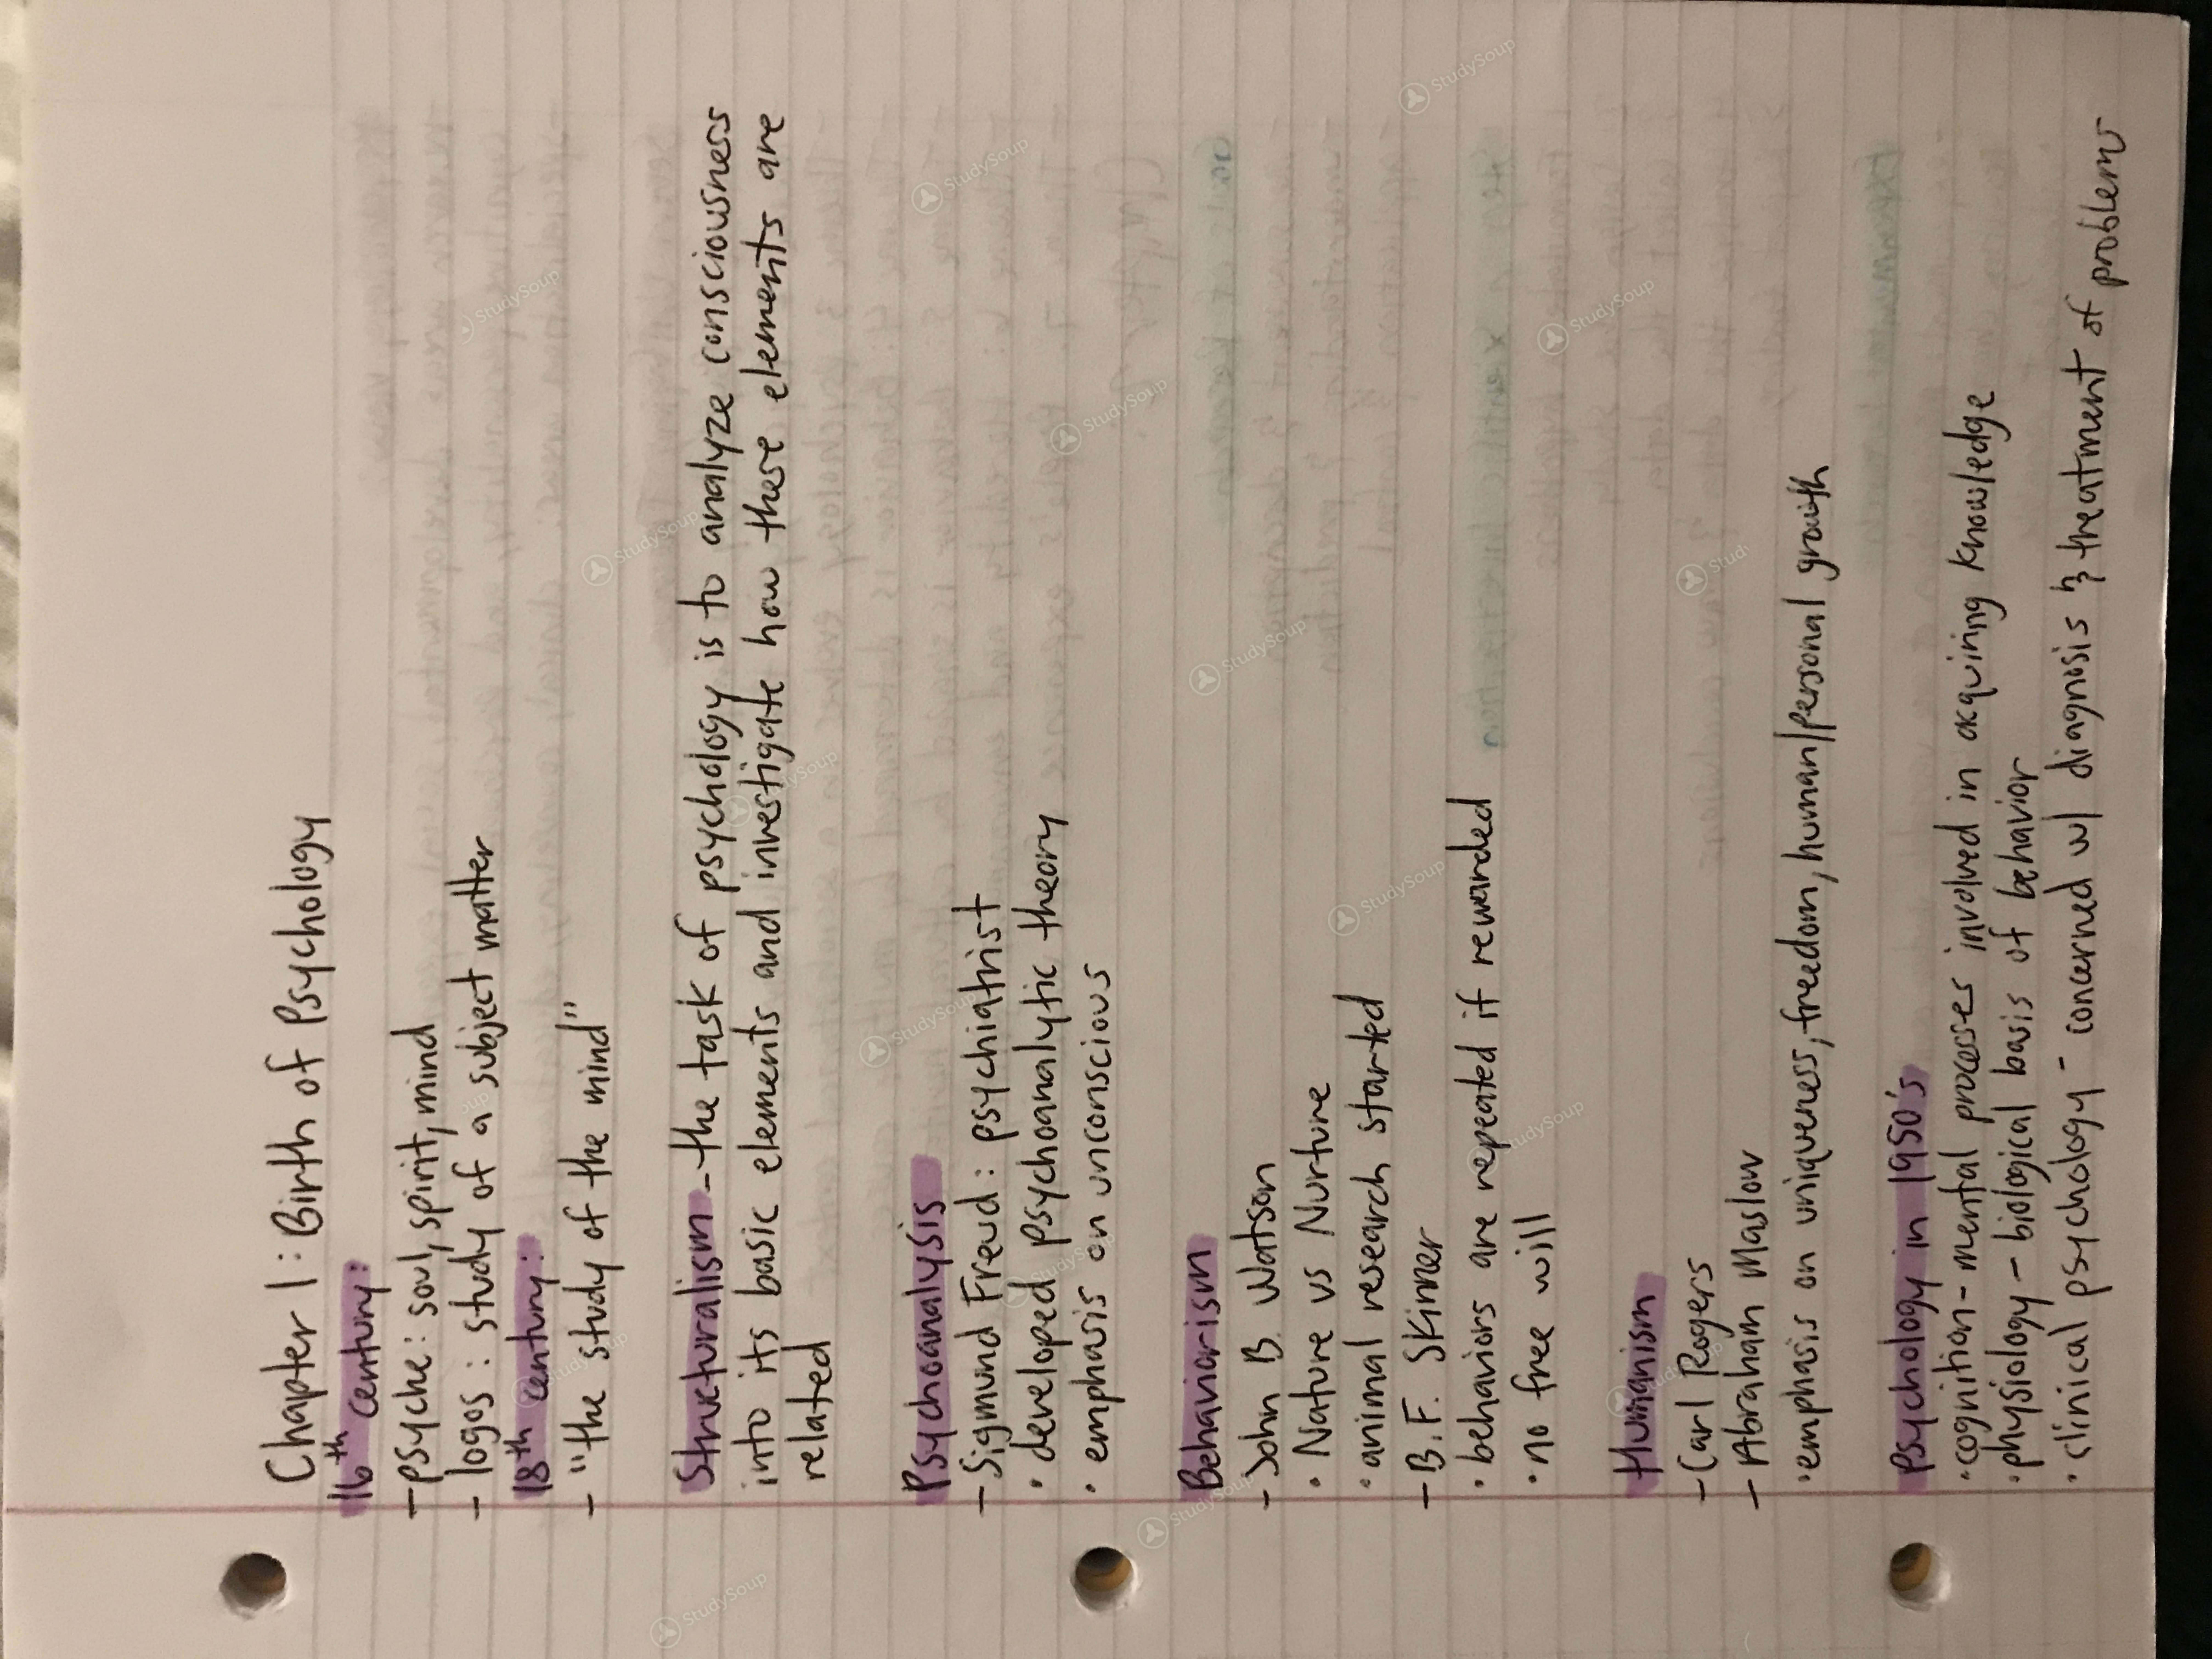 UNLV - PSY 101 - Chapter 1 & Part one of Chapter 2 notes: PSY